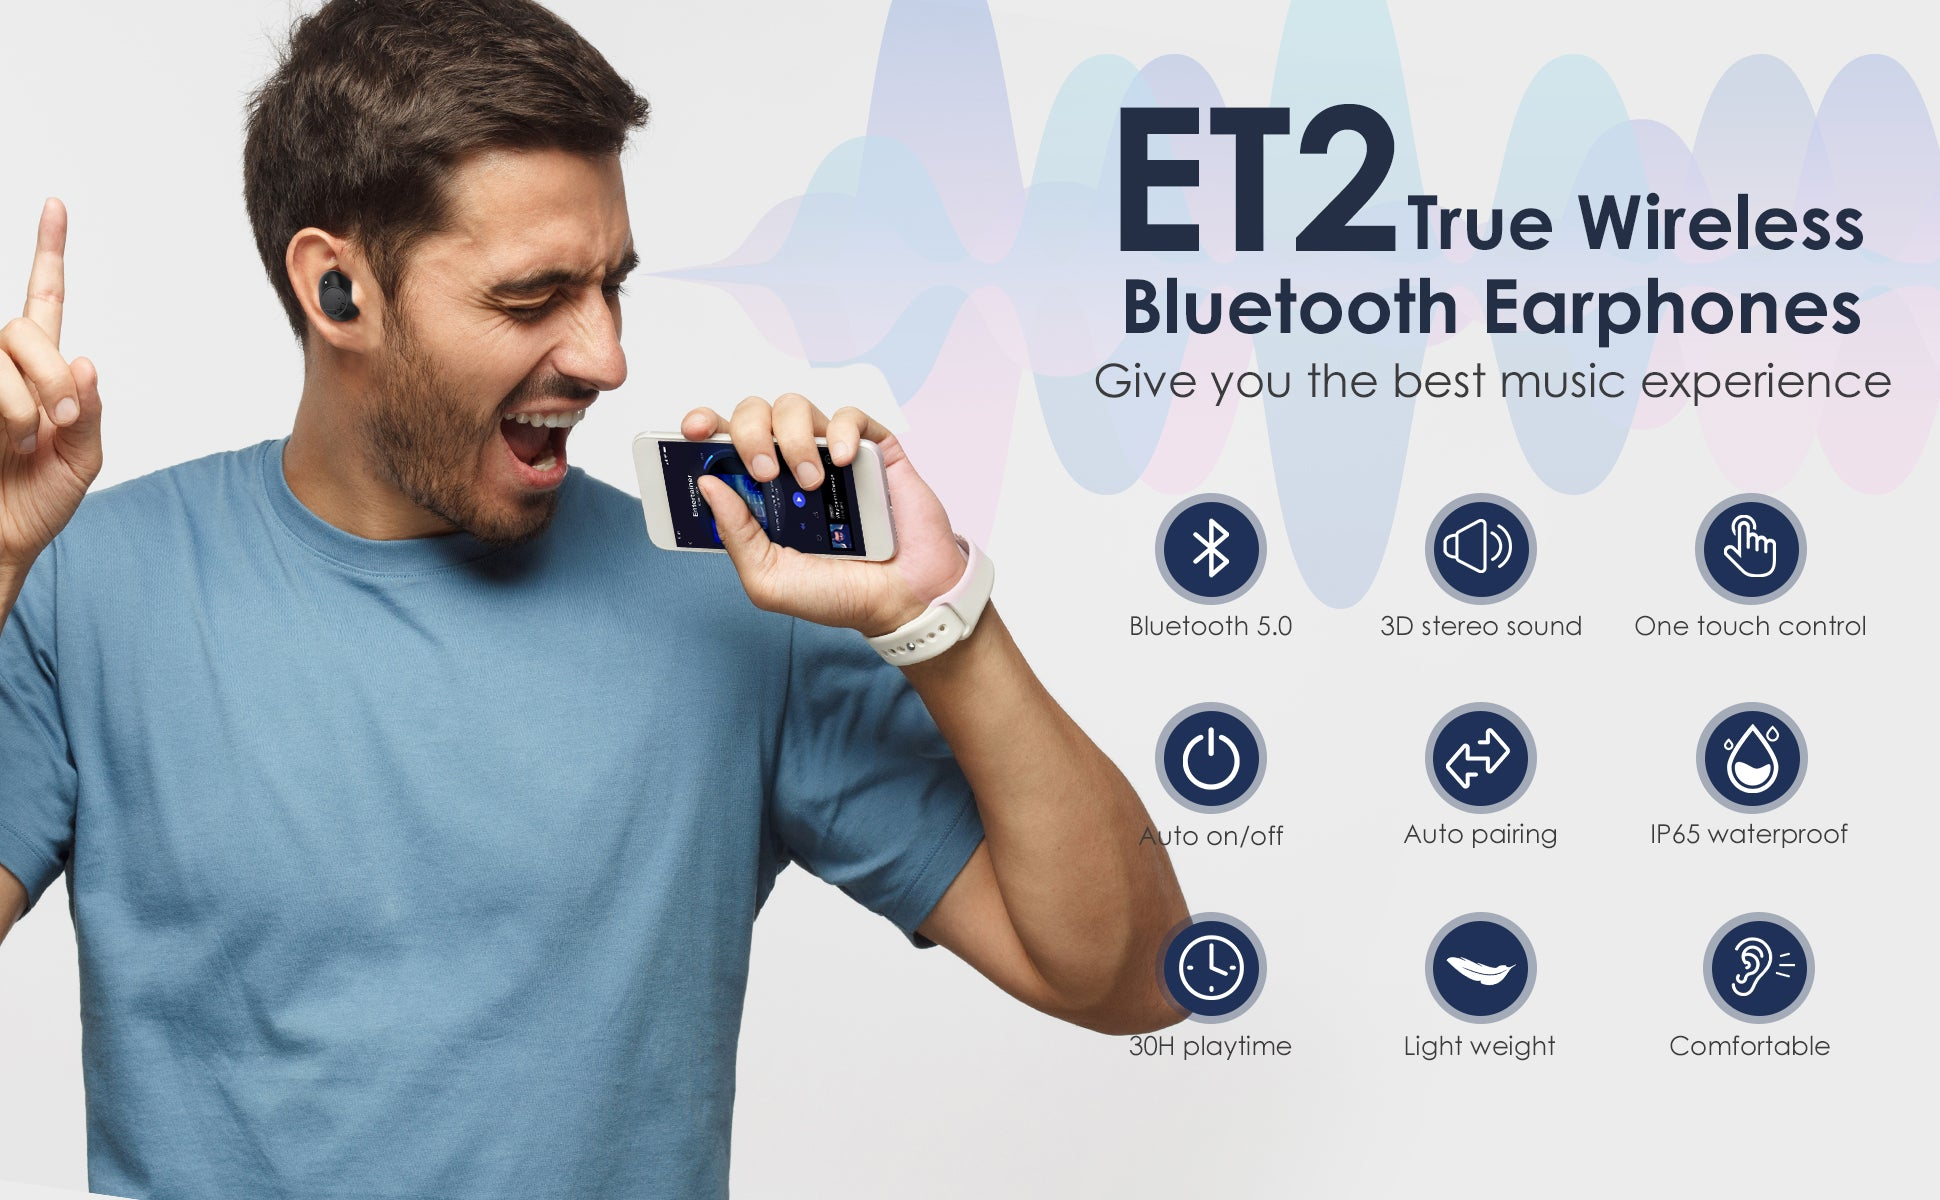 holyhigh-wireless-earbuds-et2-Details-2